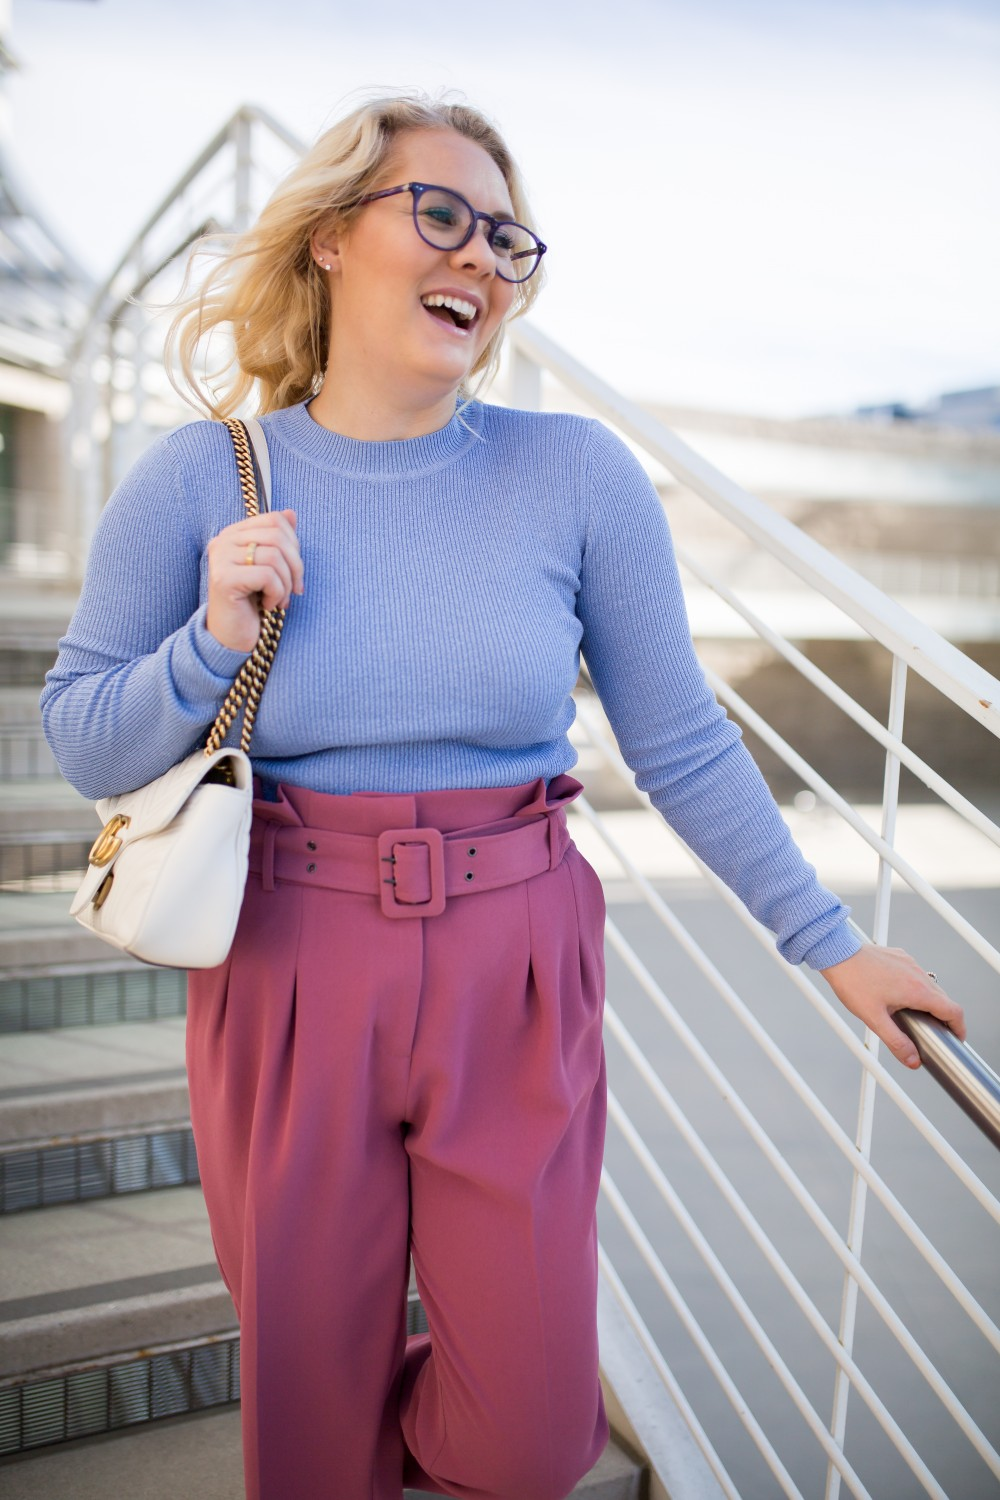 girl laughing wearing glasses a blue sweater and pink pants